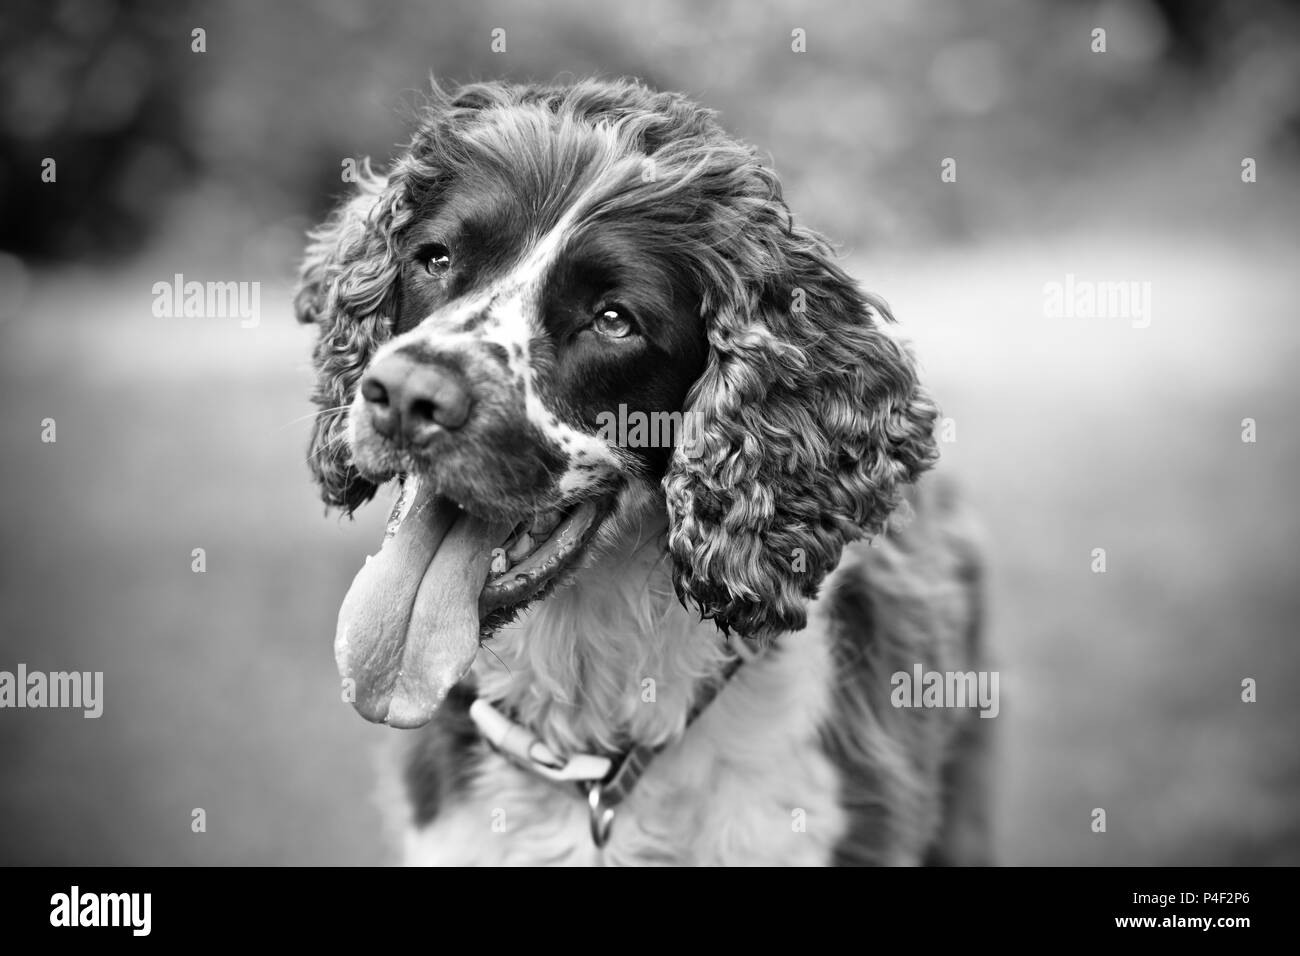 A purebred English Springer Spaniel dog with mouth open.  Very shallow depth of field with blurred background and in artistic black and white (b&w) - Stock Image